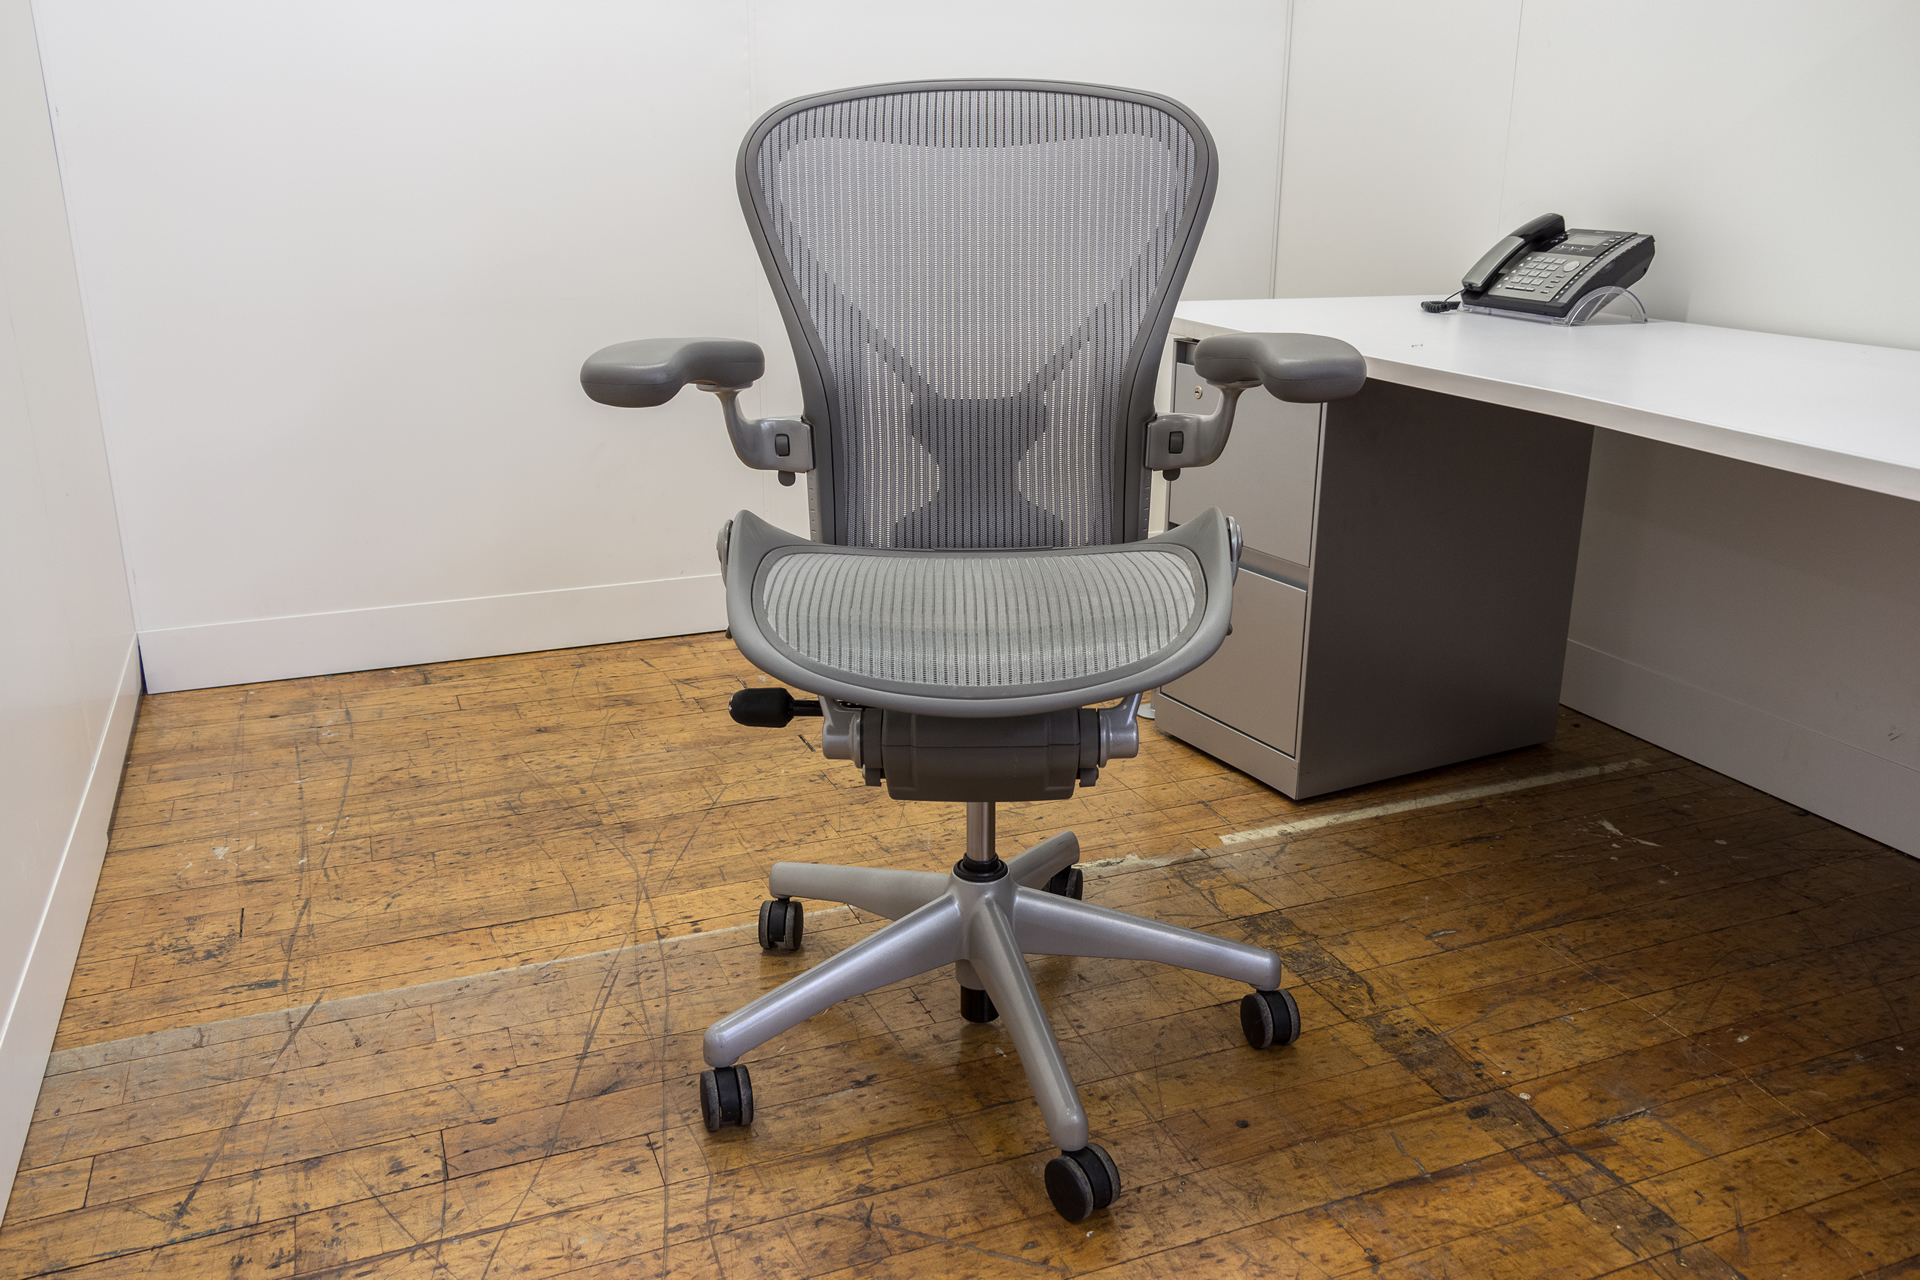 posturefit chair true innovations herman miller aeron size b chairs in platinum peartree